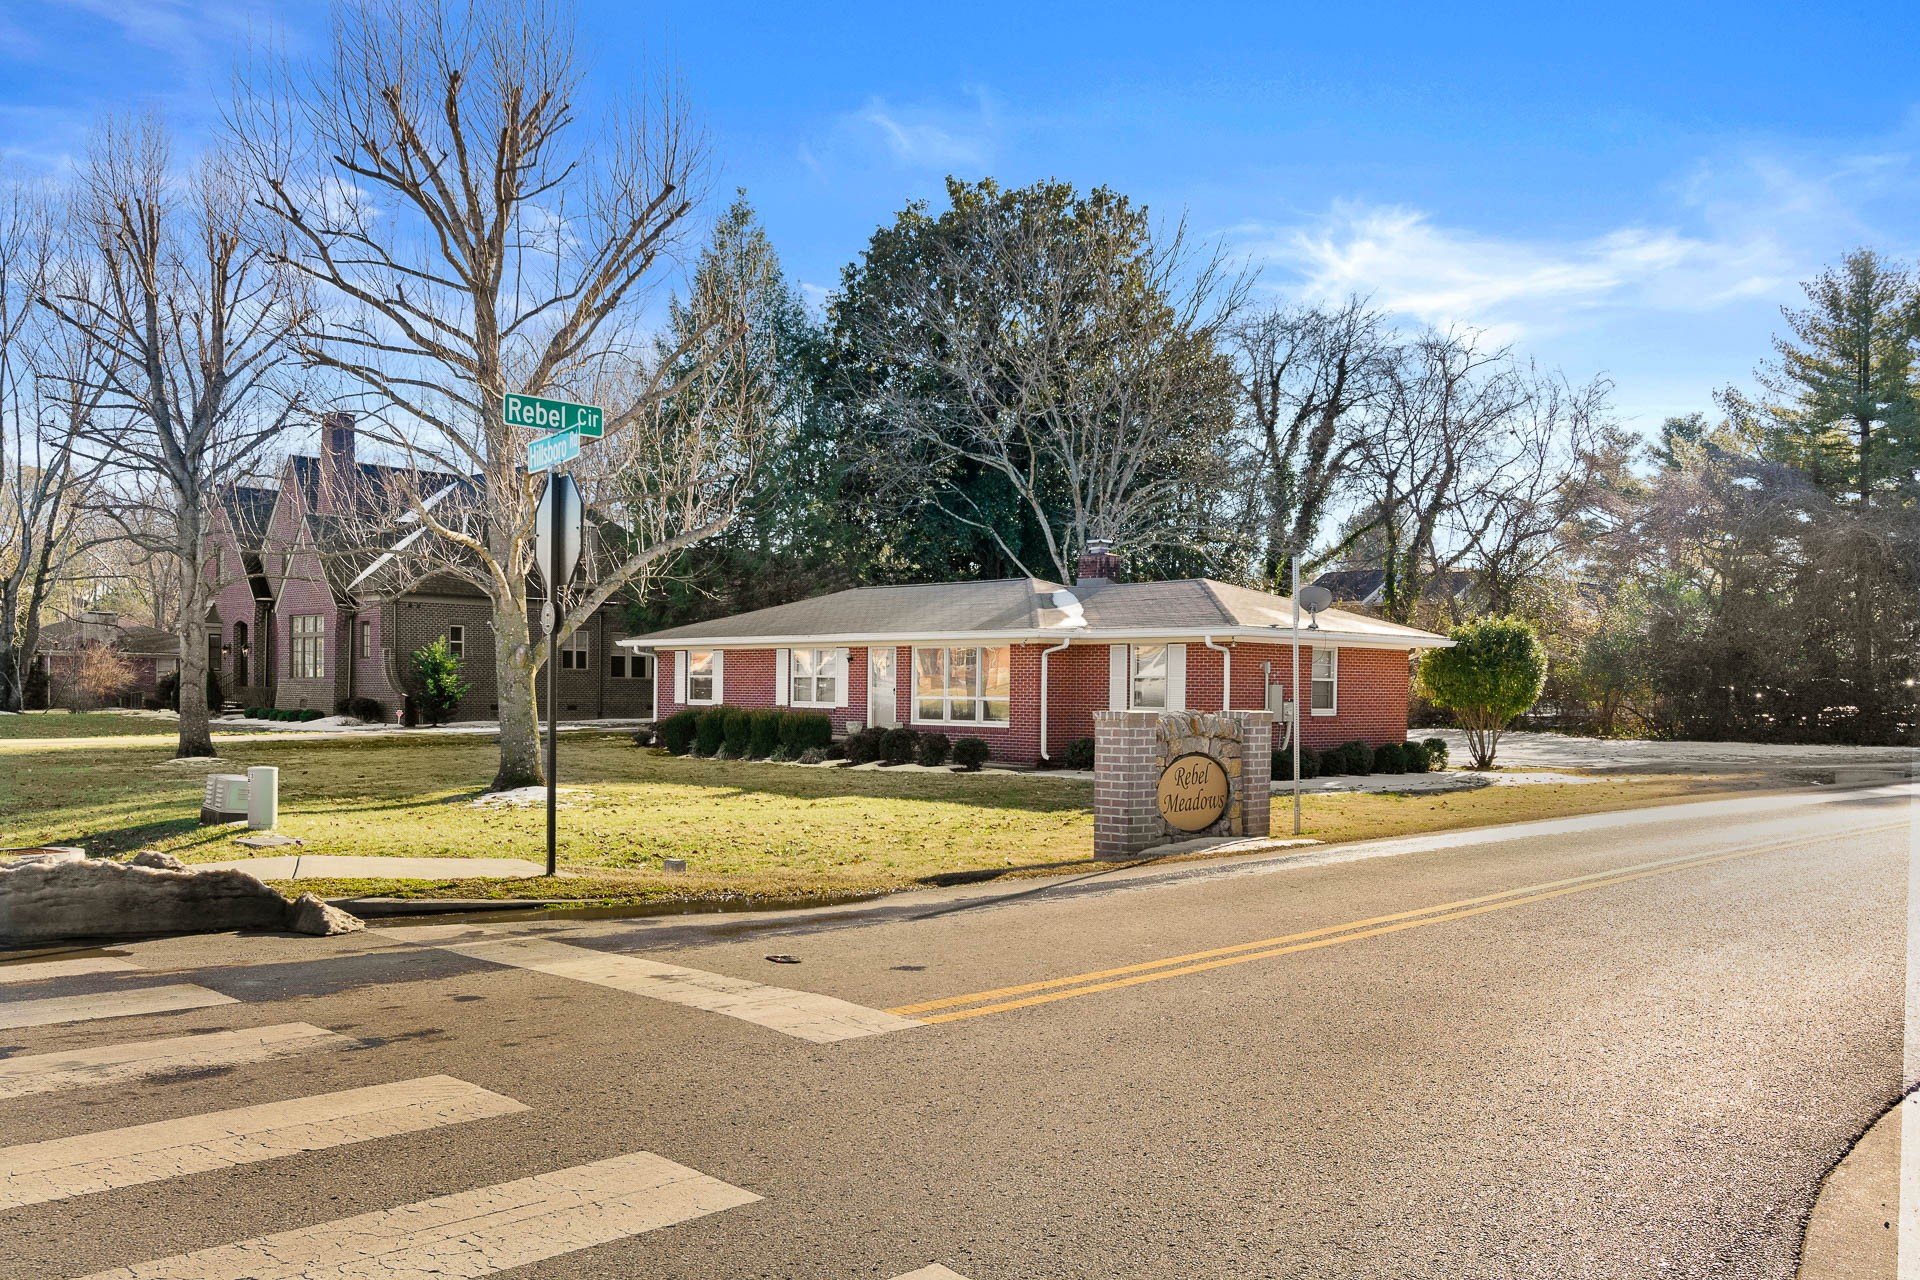 Ranch on .5 Acre Corner Lot One Mile From Downtown Franklin! Attached Back Entry Garage Enters from Rebel Cr.  $1M+ Homes being built on these lots. No HOA.